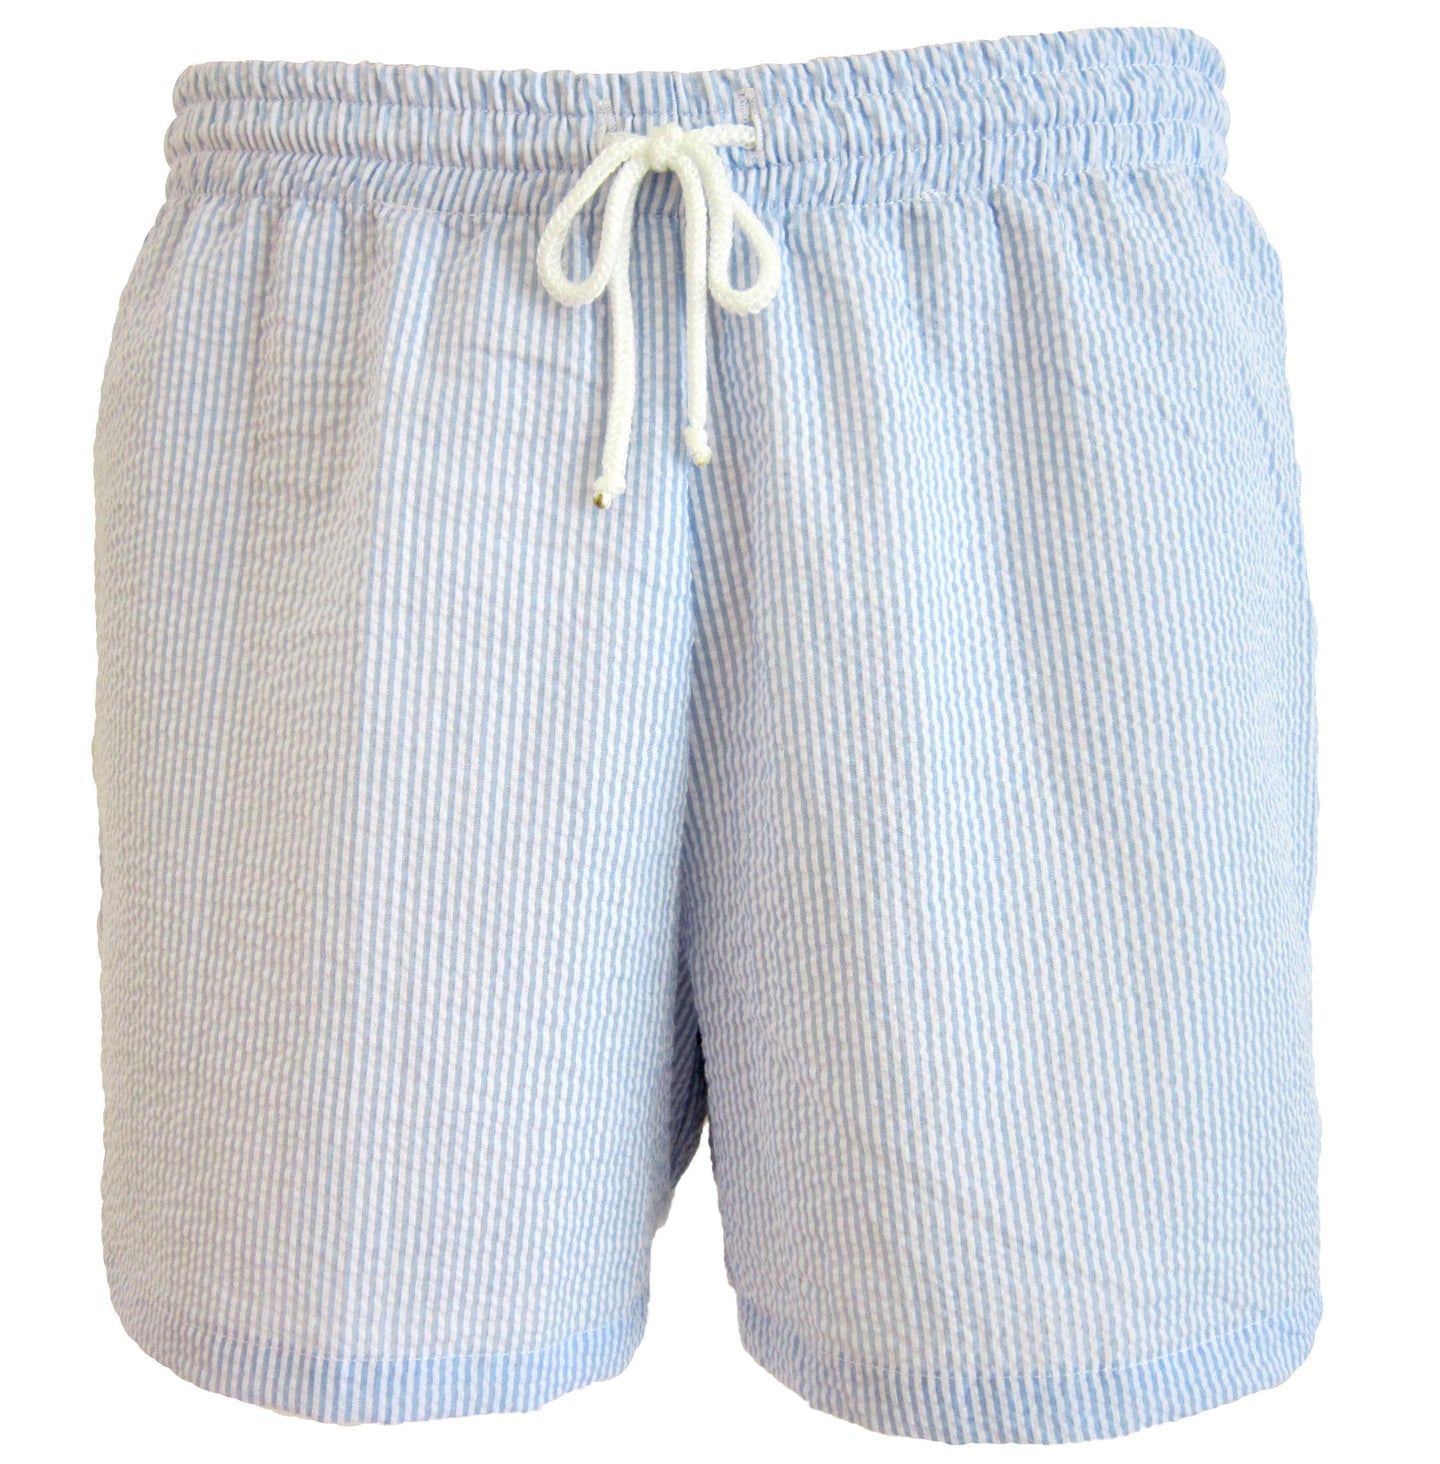 Blue Seersucker Swim Trunks